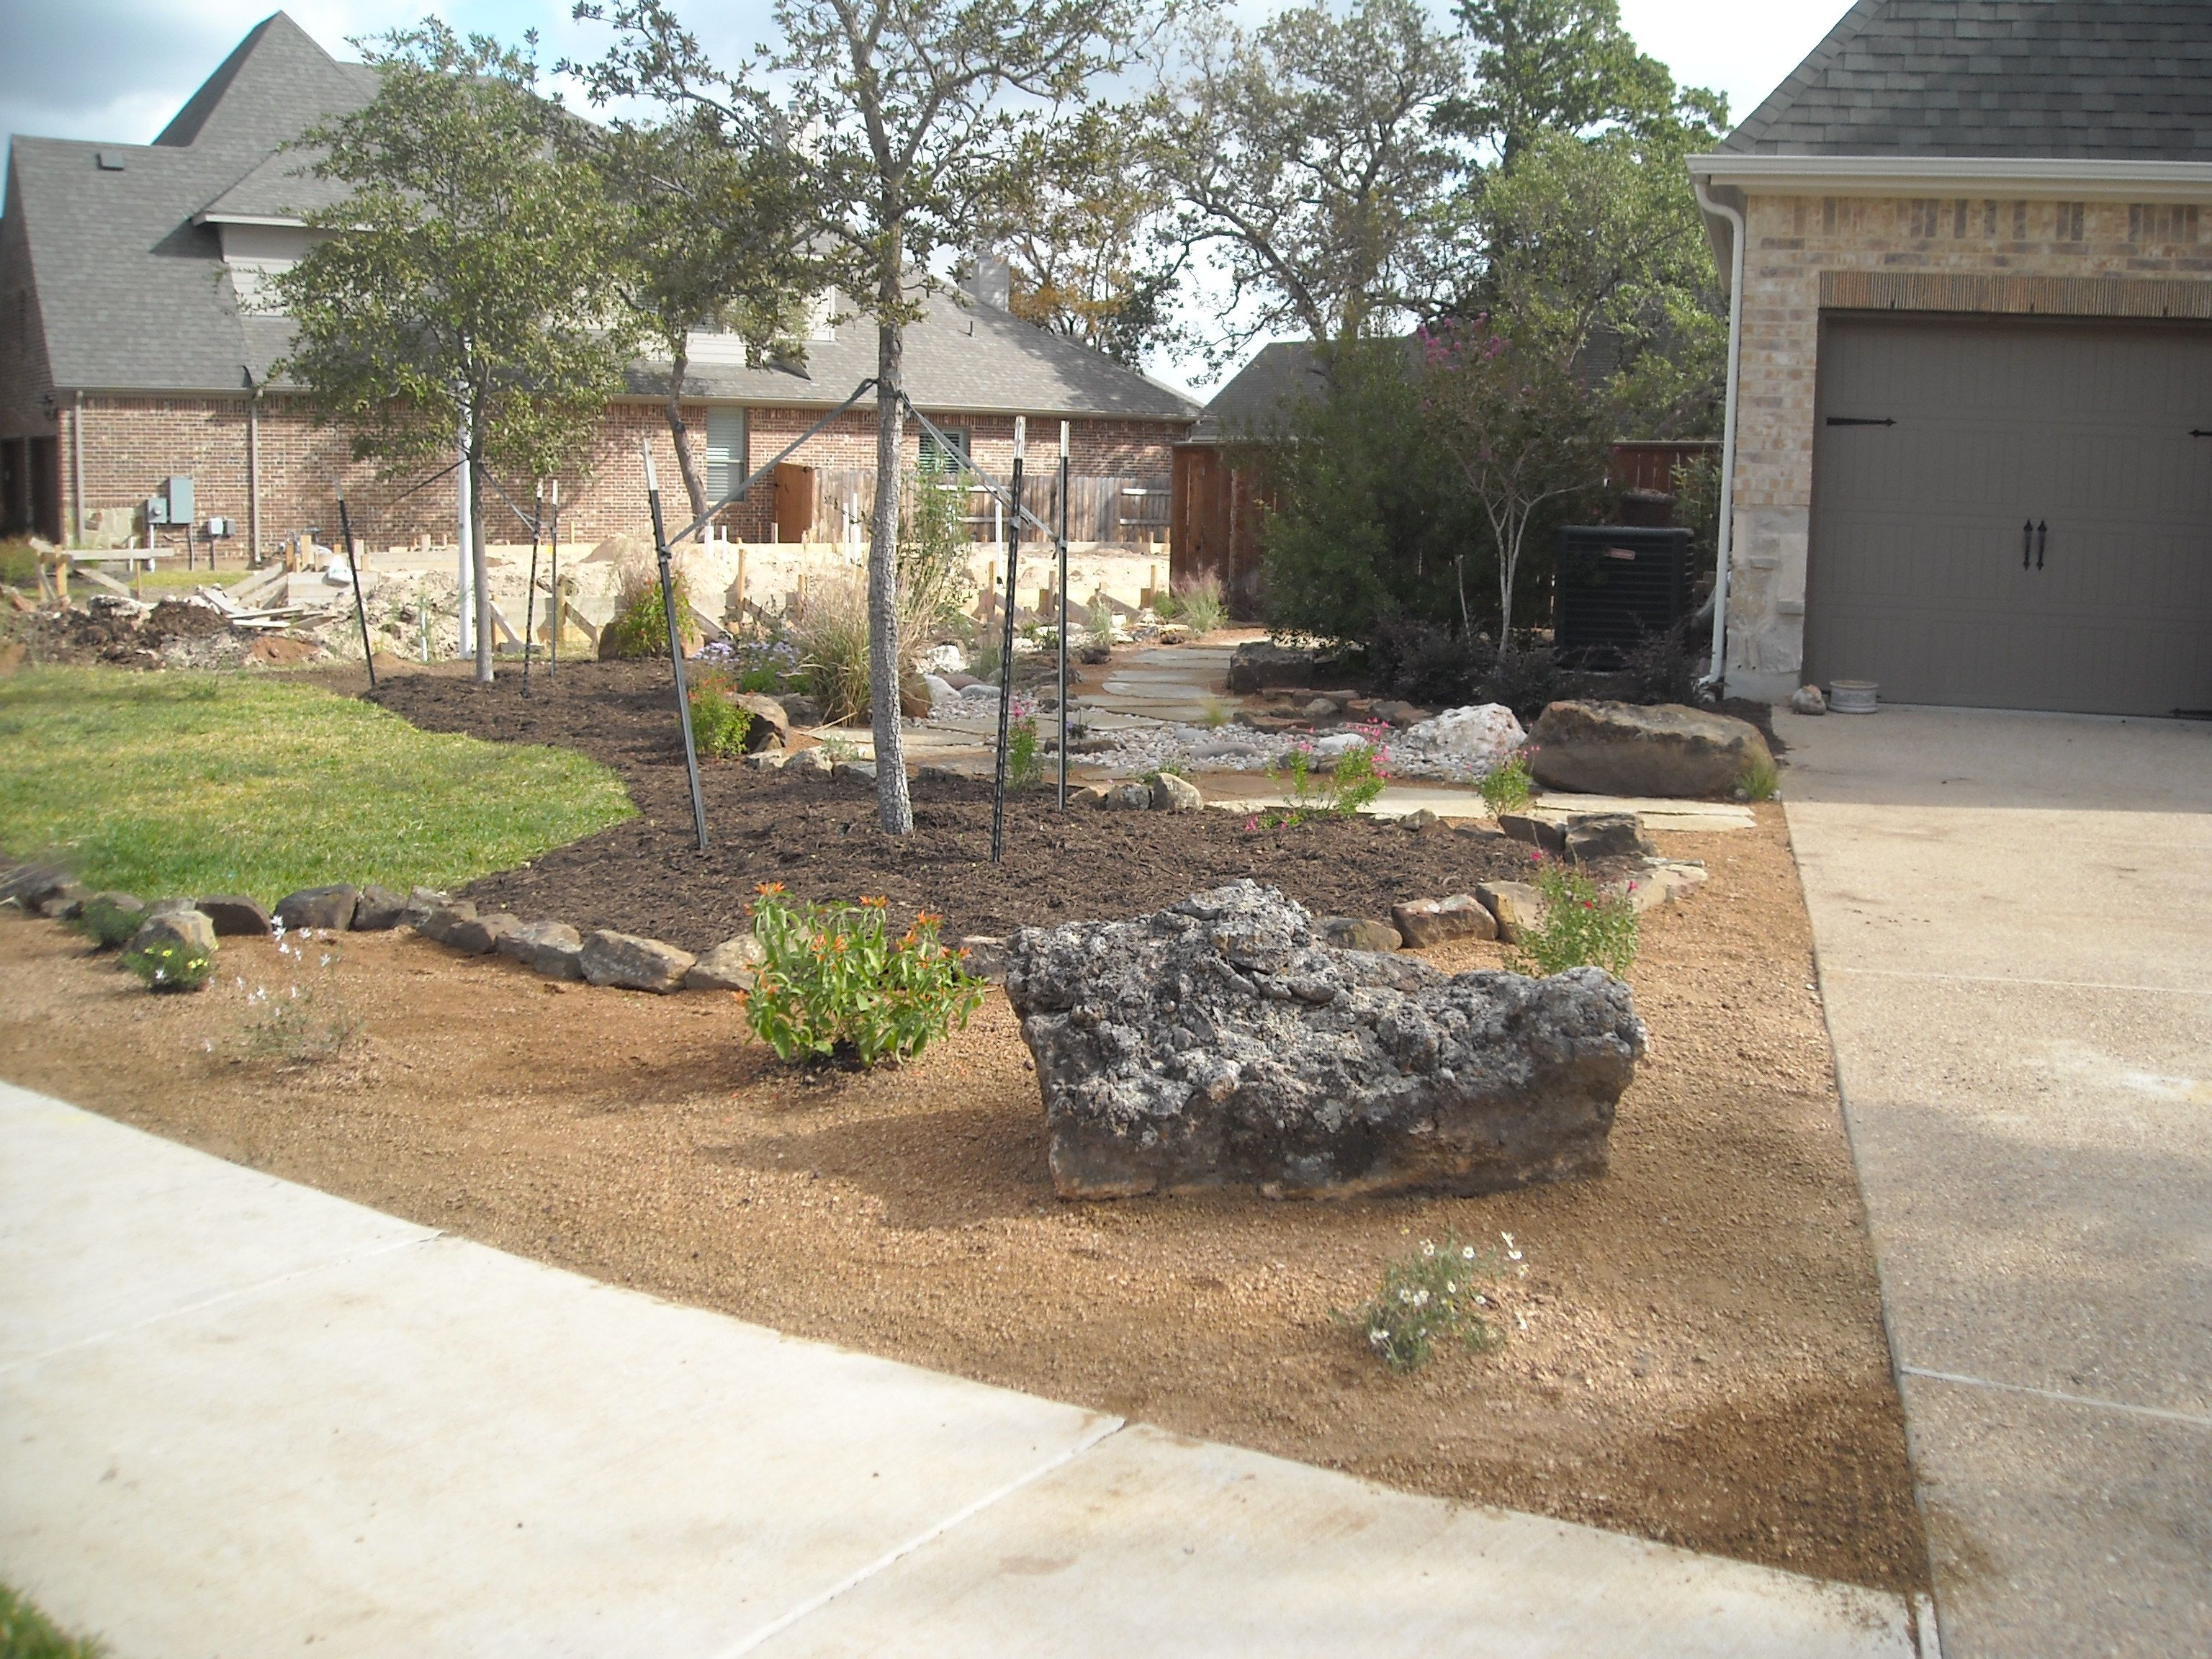 Front Yard Landscape Xeriscape Theme With Decomposed Granite Mulch A Dry Creek Bed And Walkway A Bea Xeriscape Front Yard Xeriscape Front Yard Landscaping